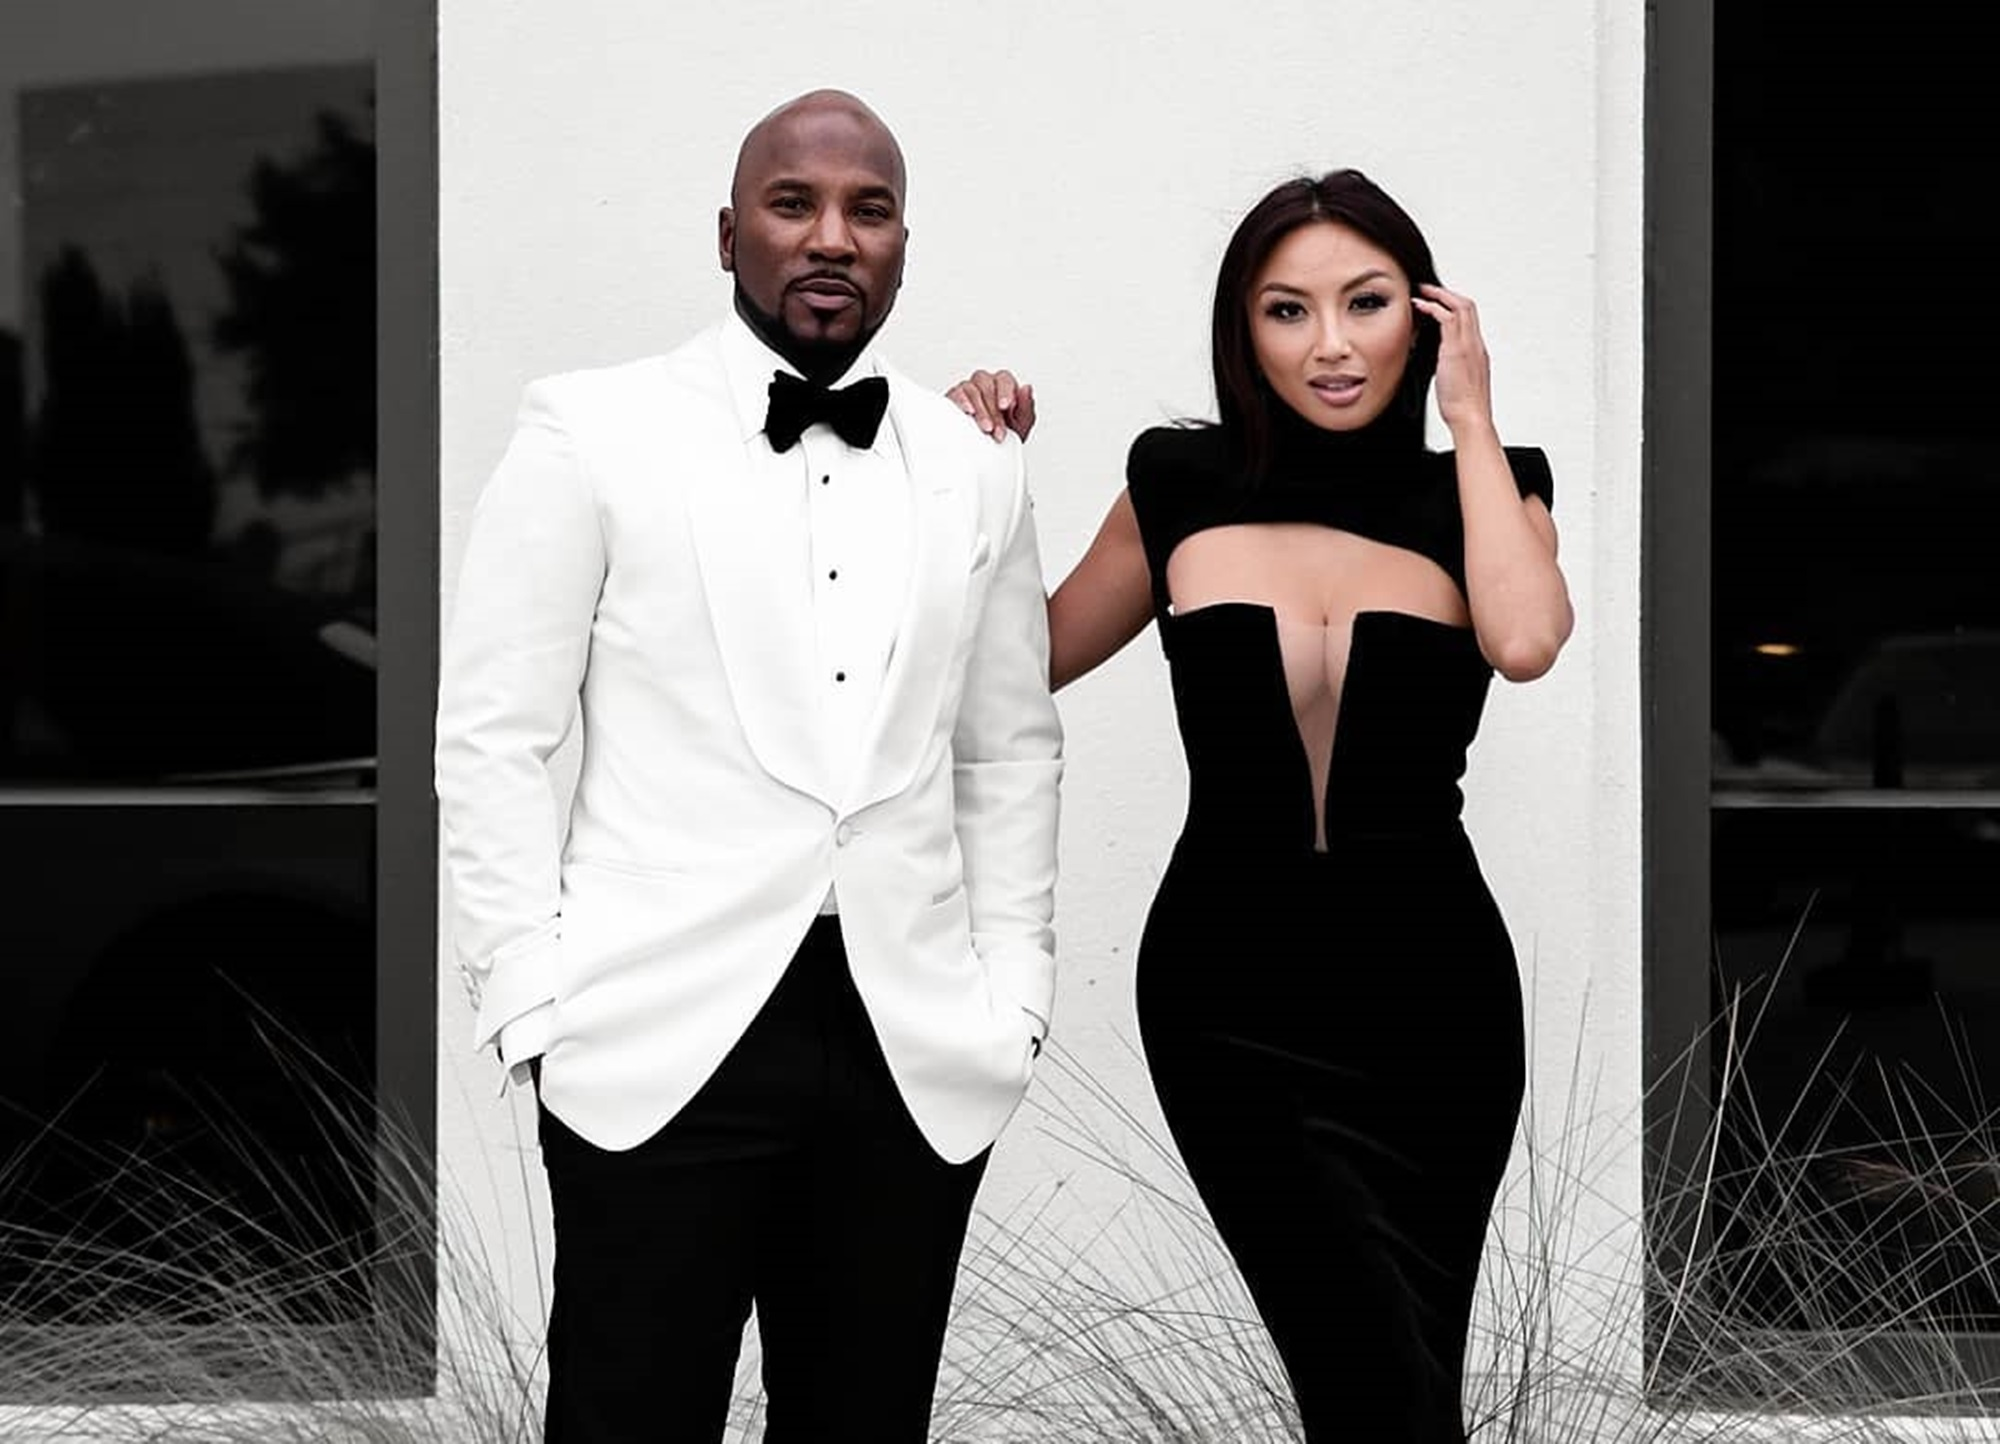 """jeannie-mai-takes-on-the-role-of-ride-or-die-chick-in-new-photos-with-boyfriend-jeezy"""